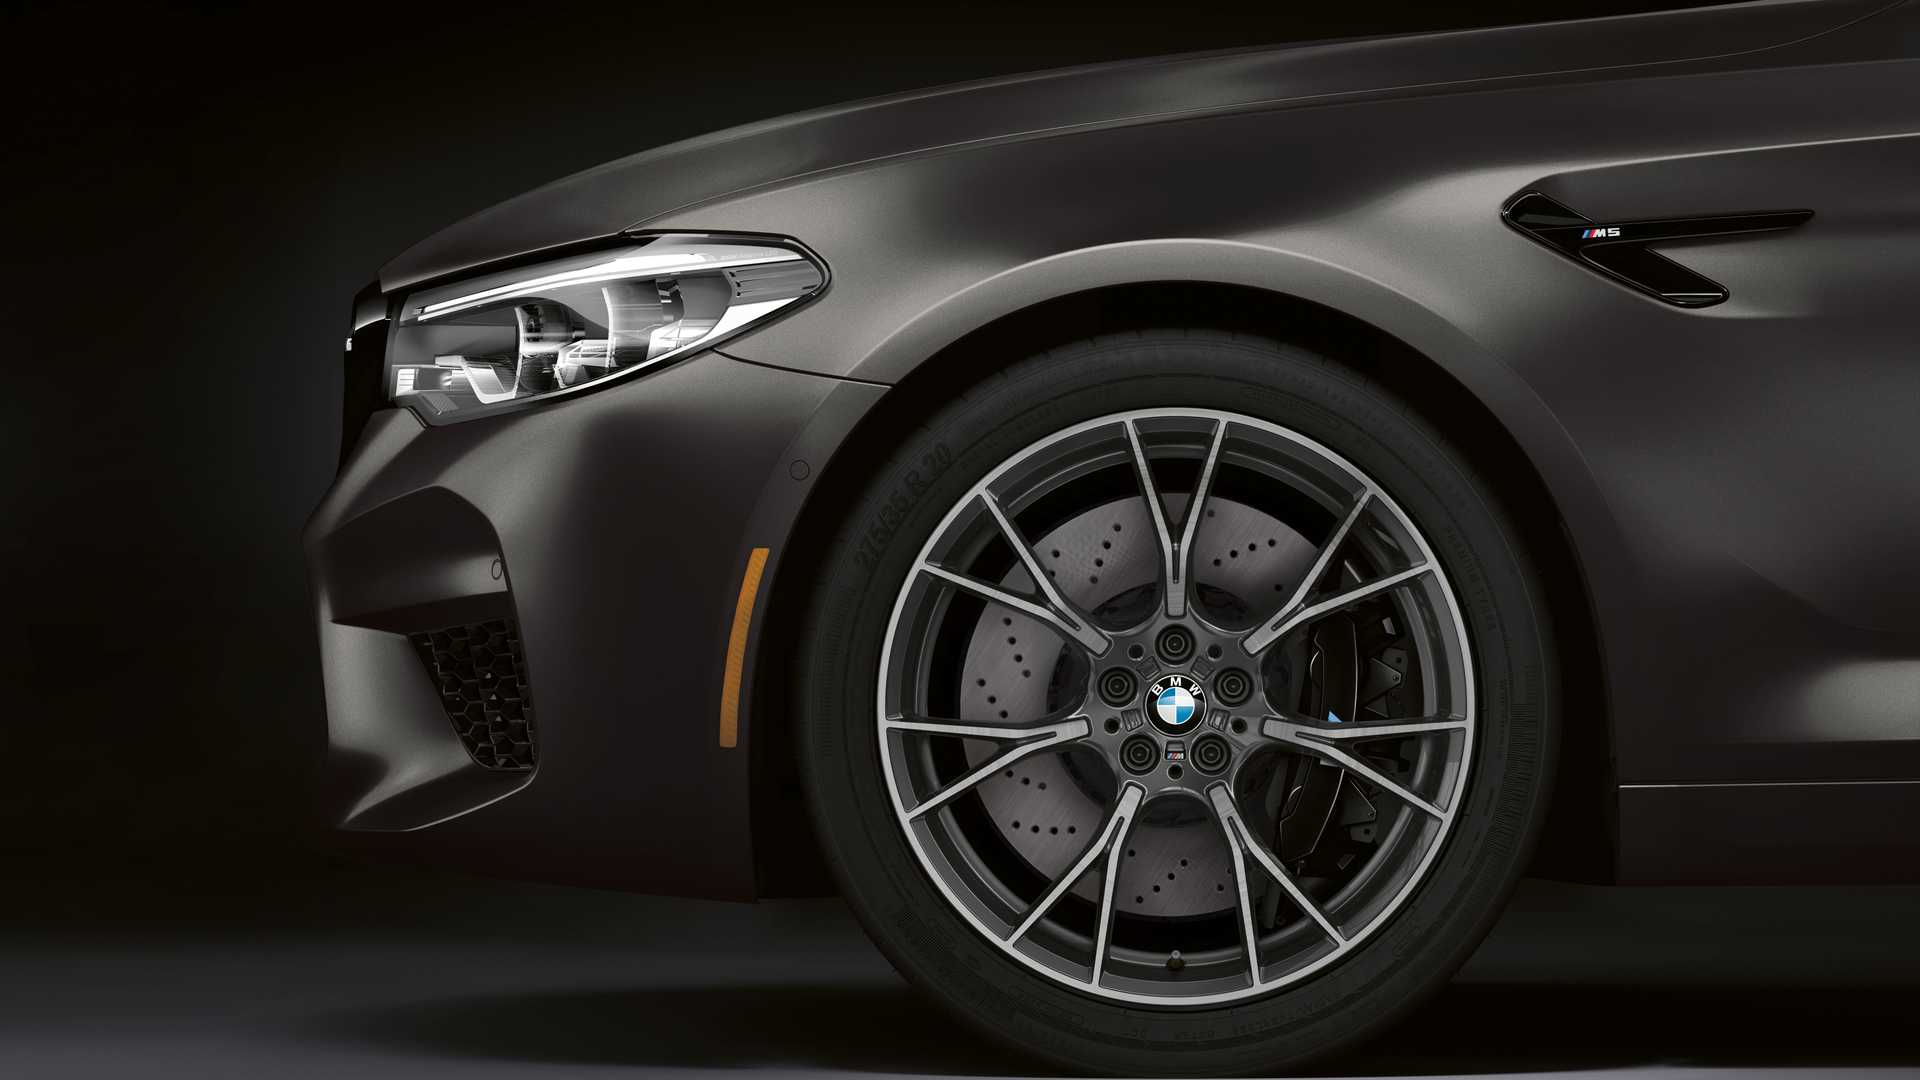 53 All New 2020 Bmw M5 Edition 35 Years Exterior And Interior